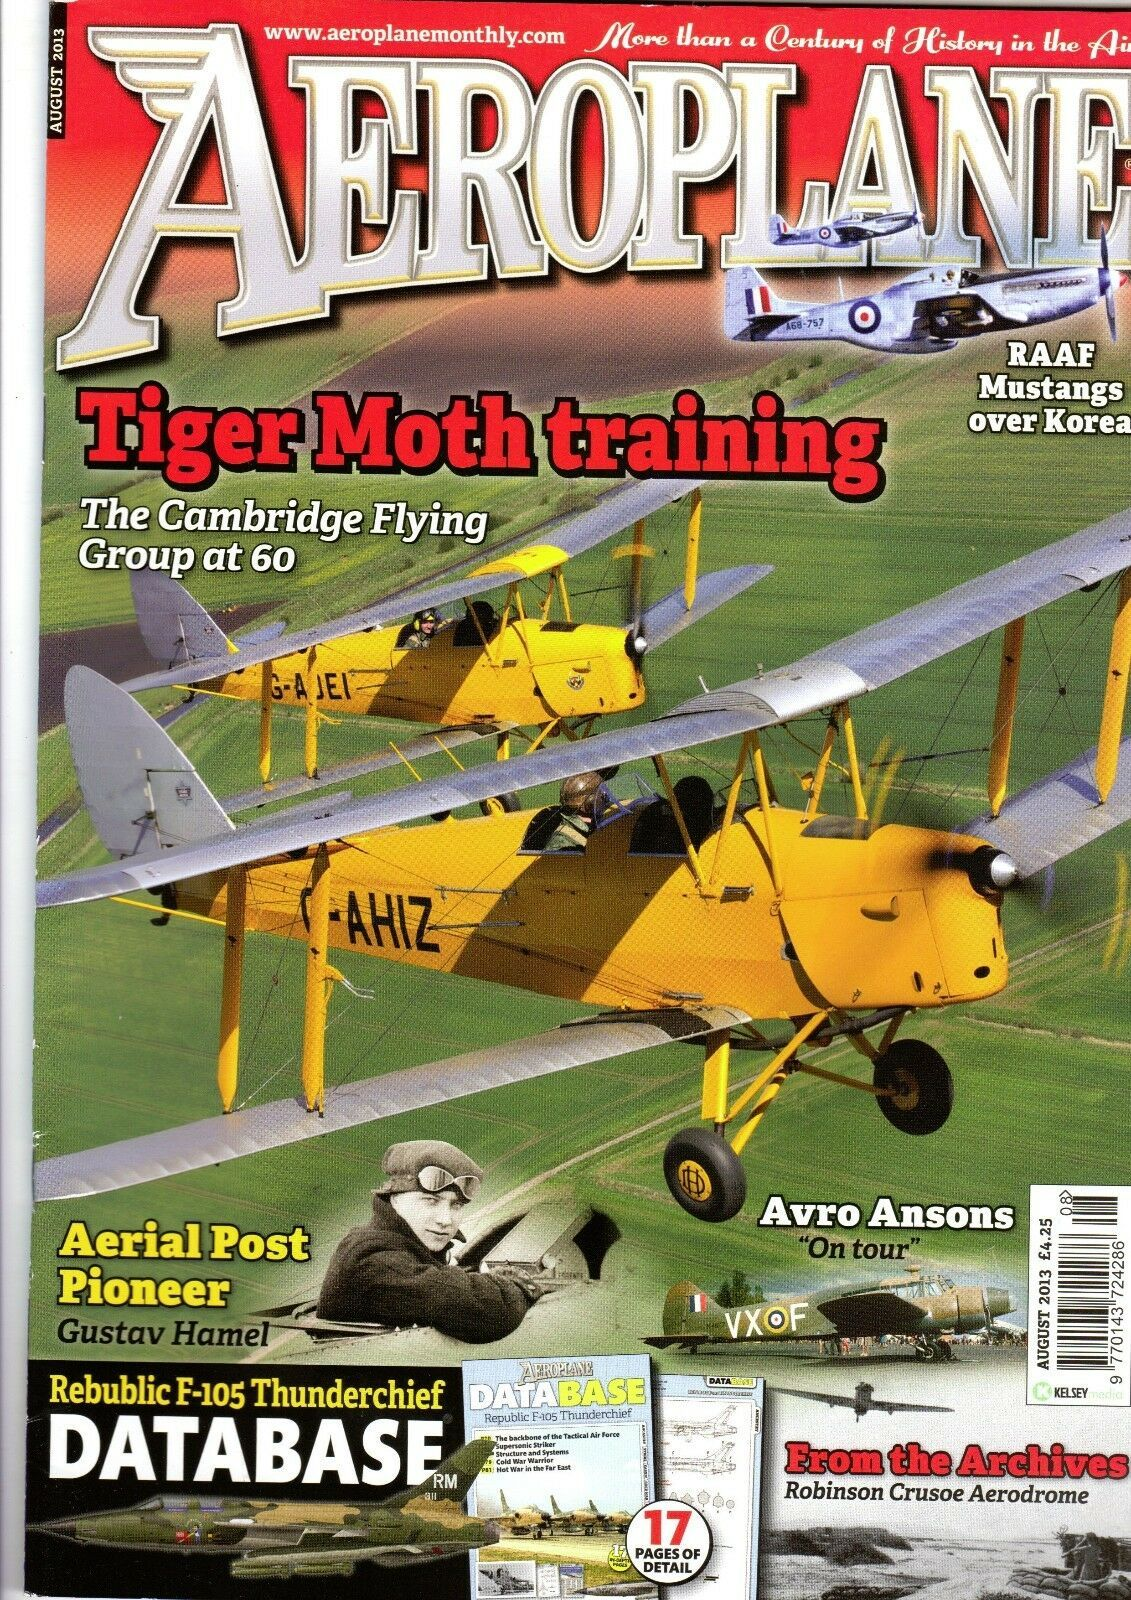 Aeroplane Monthly Magazine 2013 August Tiger Moth,F-105 Thunderchief,RAAF  P-51